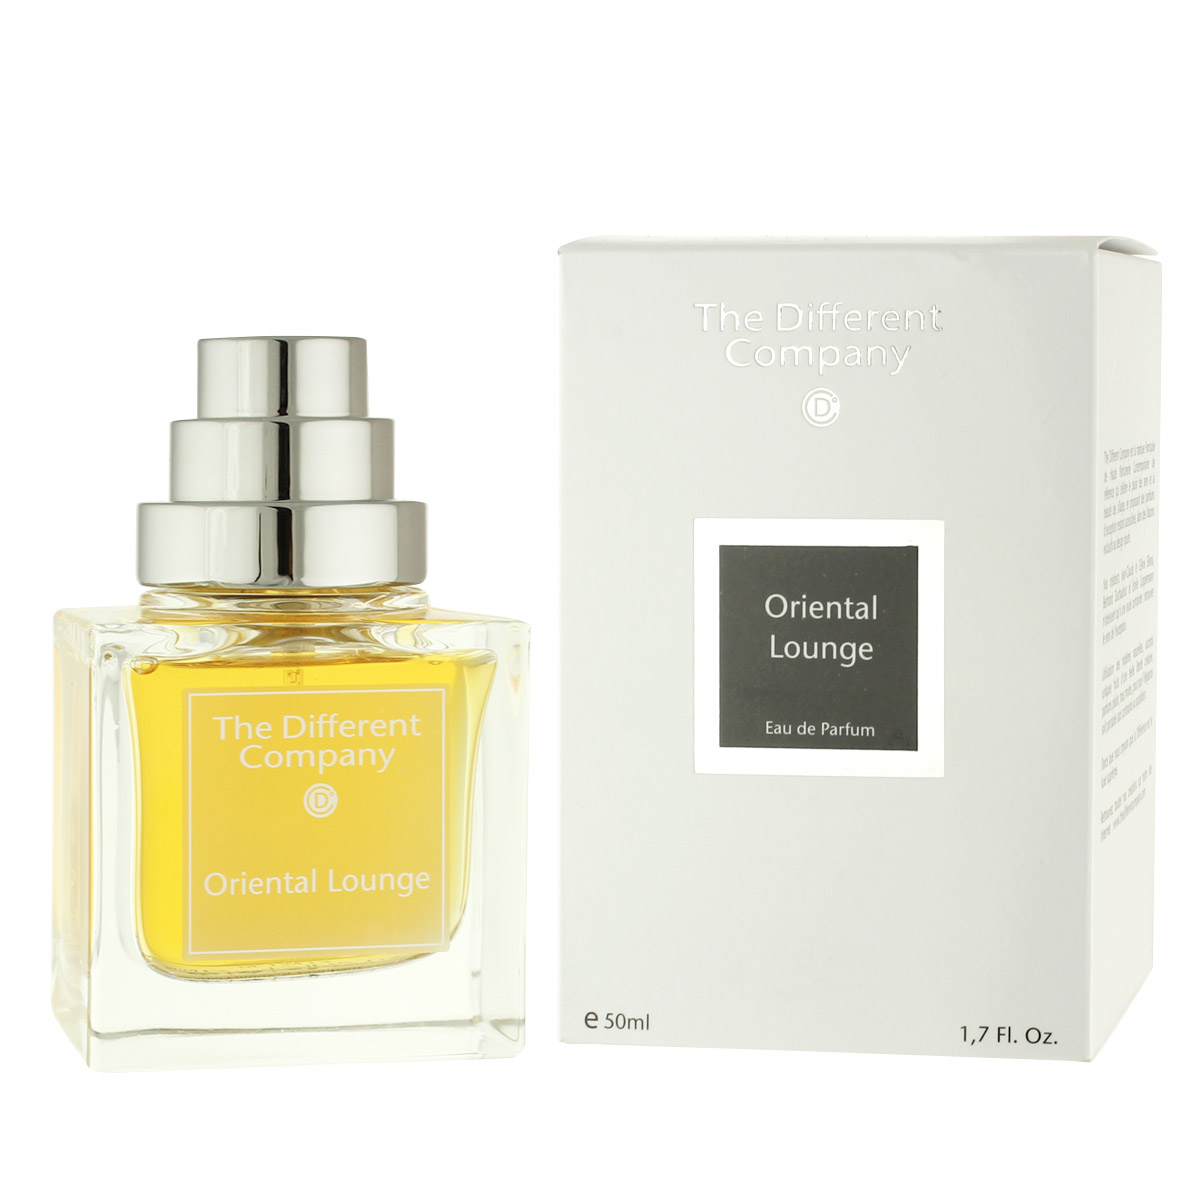 The Different Company Oriental Lounge Eau De Parfum 50 ml (unisex)